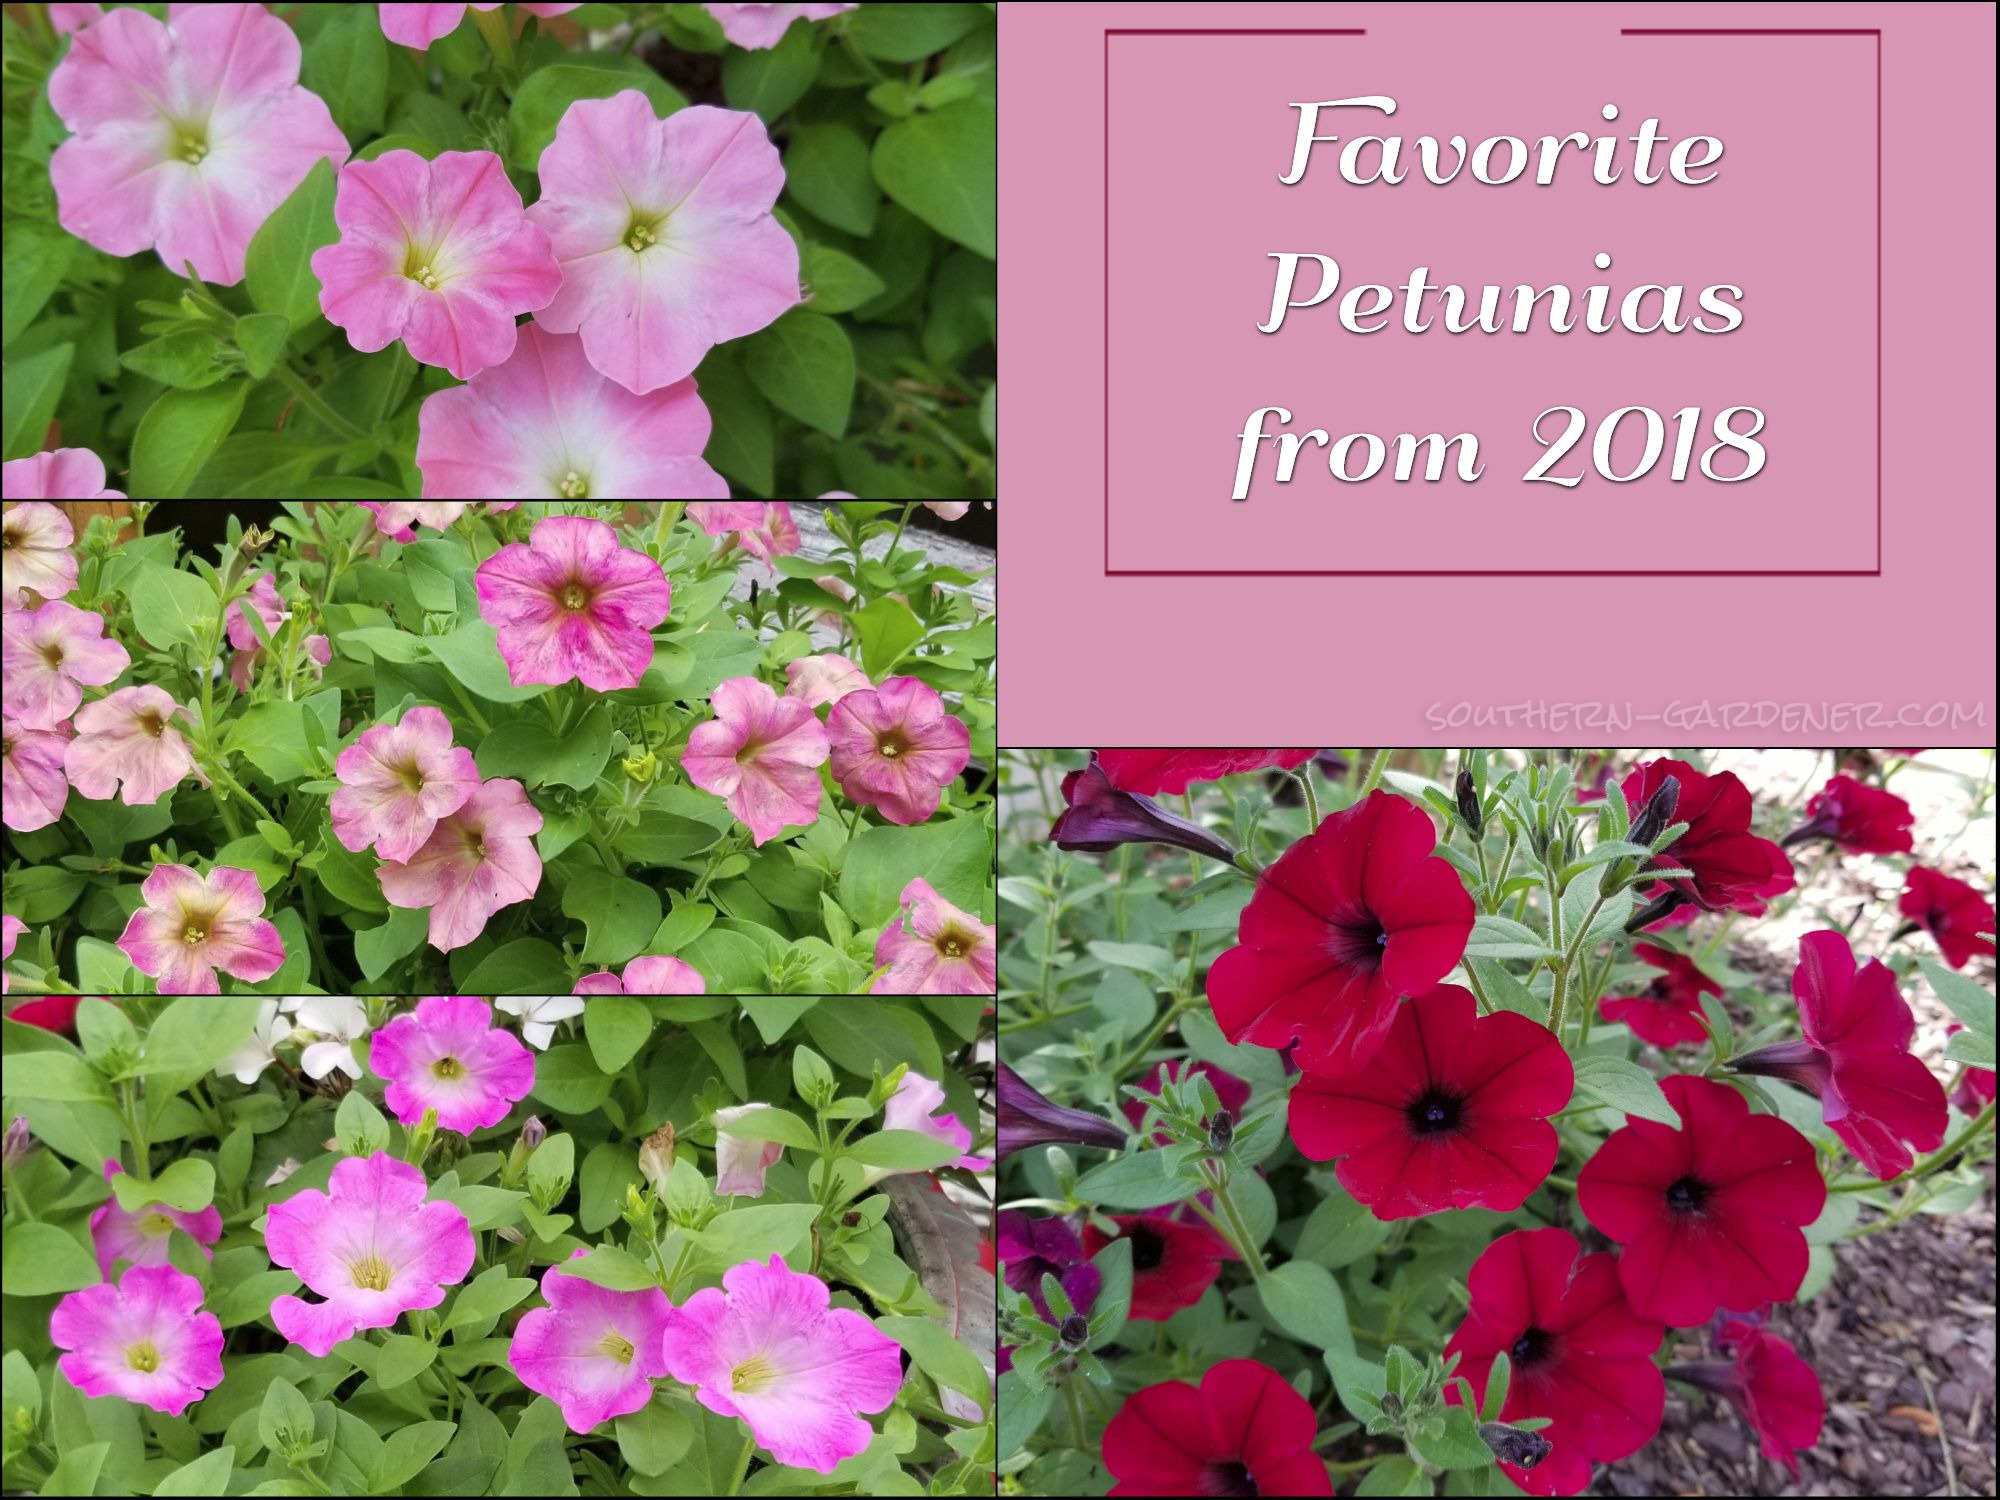 Favorite Petunias from 2018